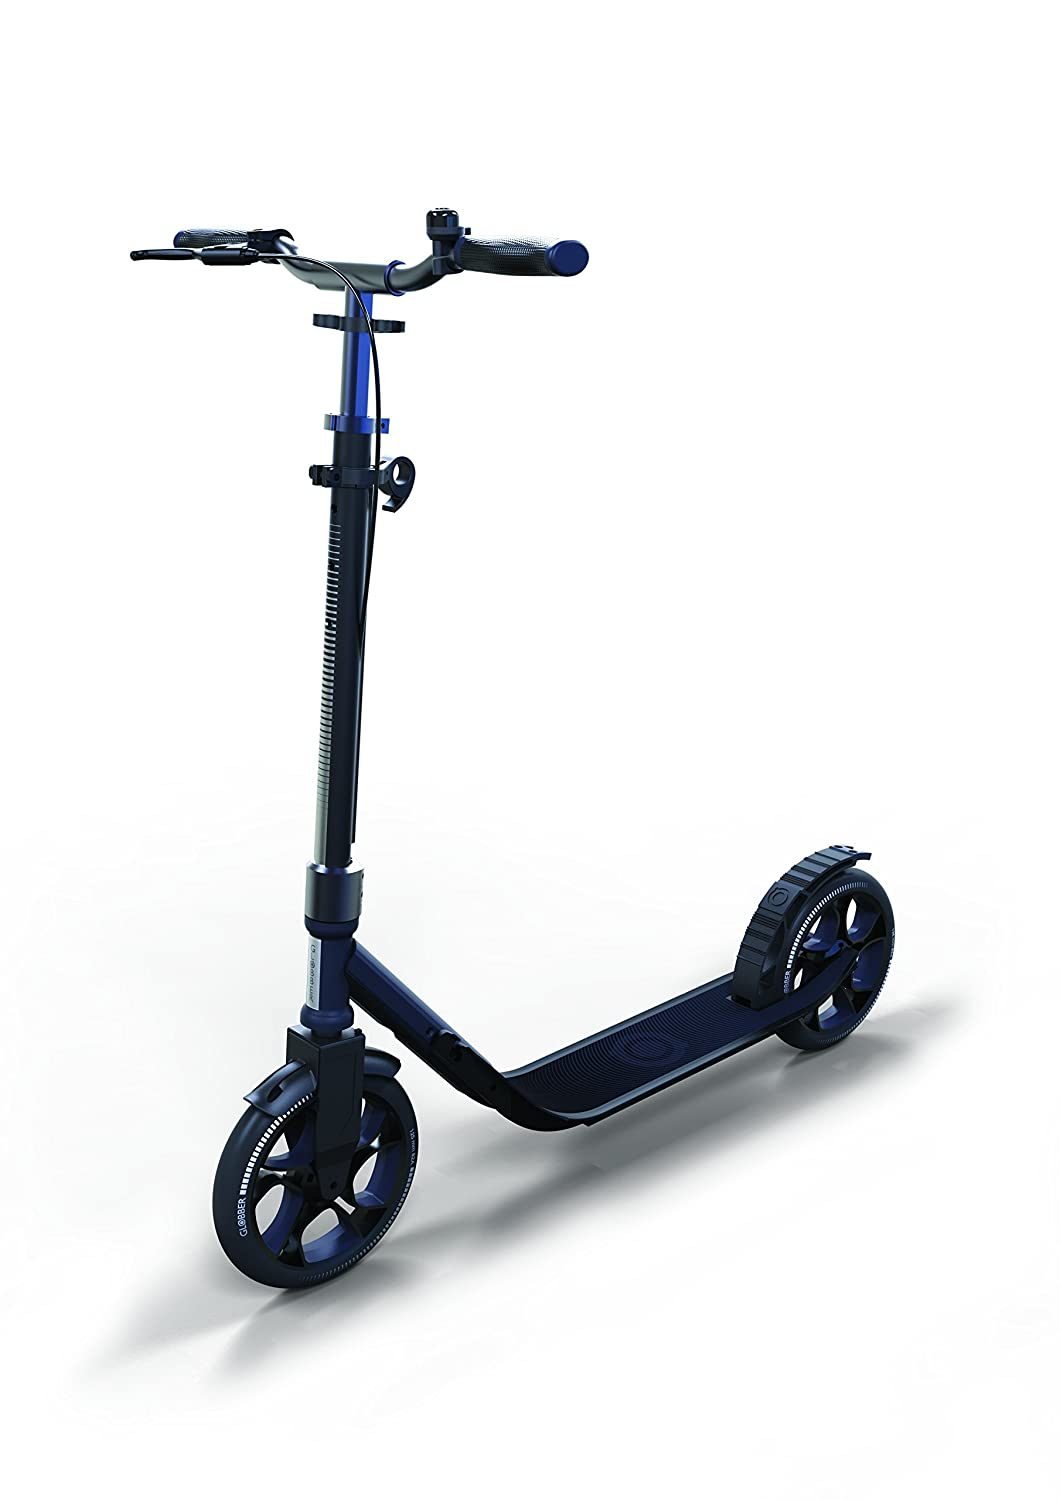 Globber Adult One Second Folding Adjustable Height Scooter with 230mm Wheels